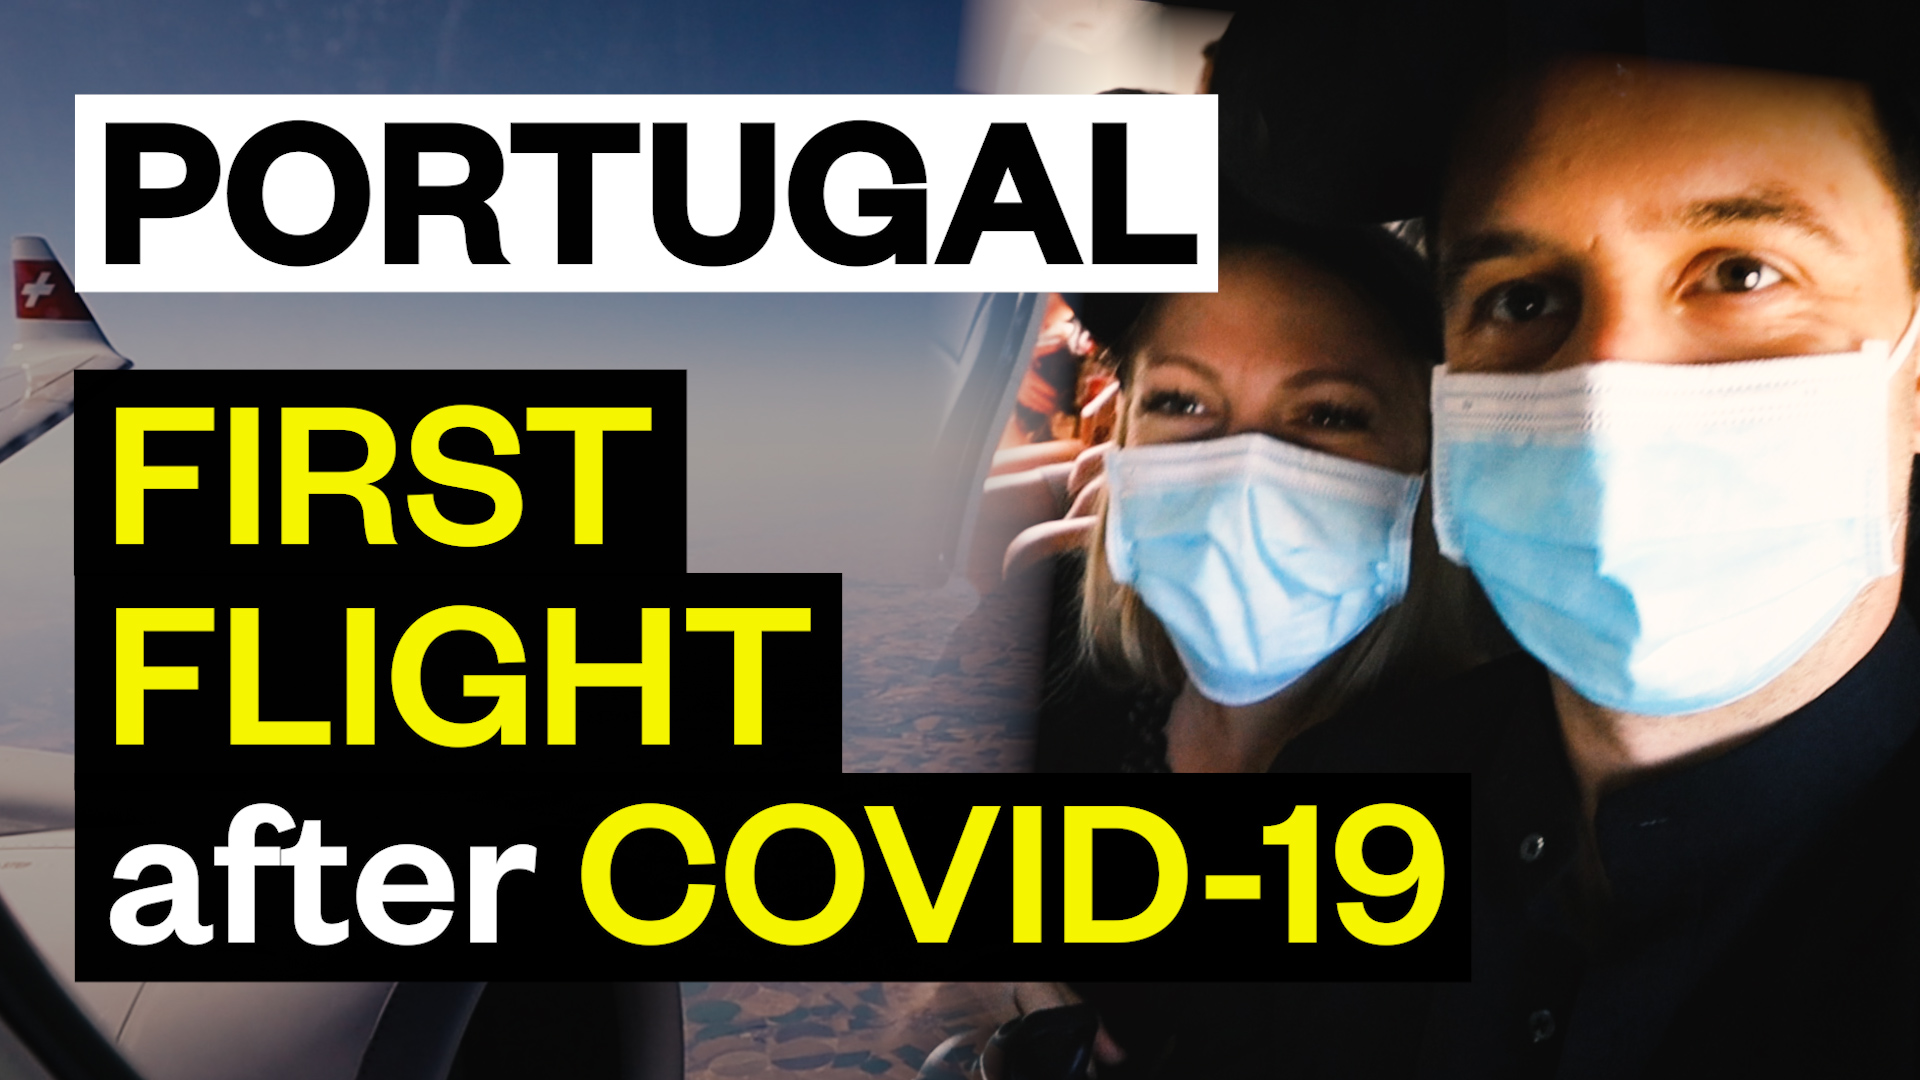 Portugal: FIRST FLIGHT After COVID-19